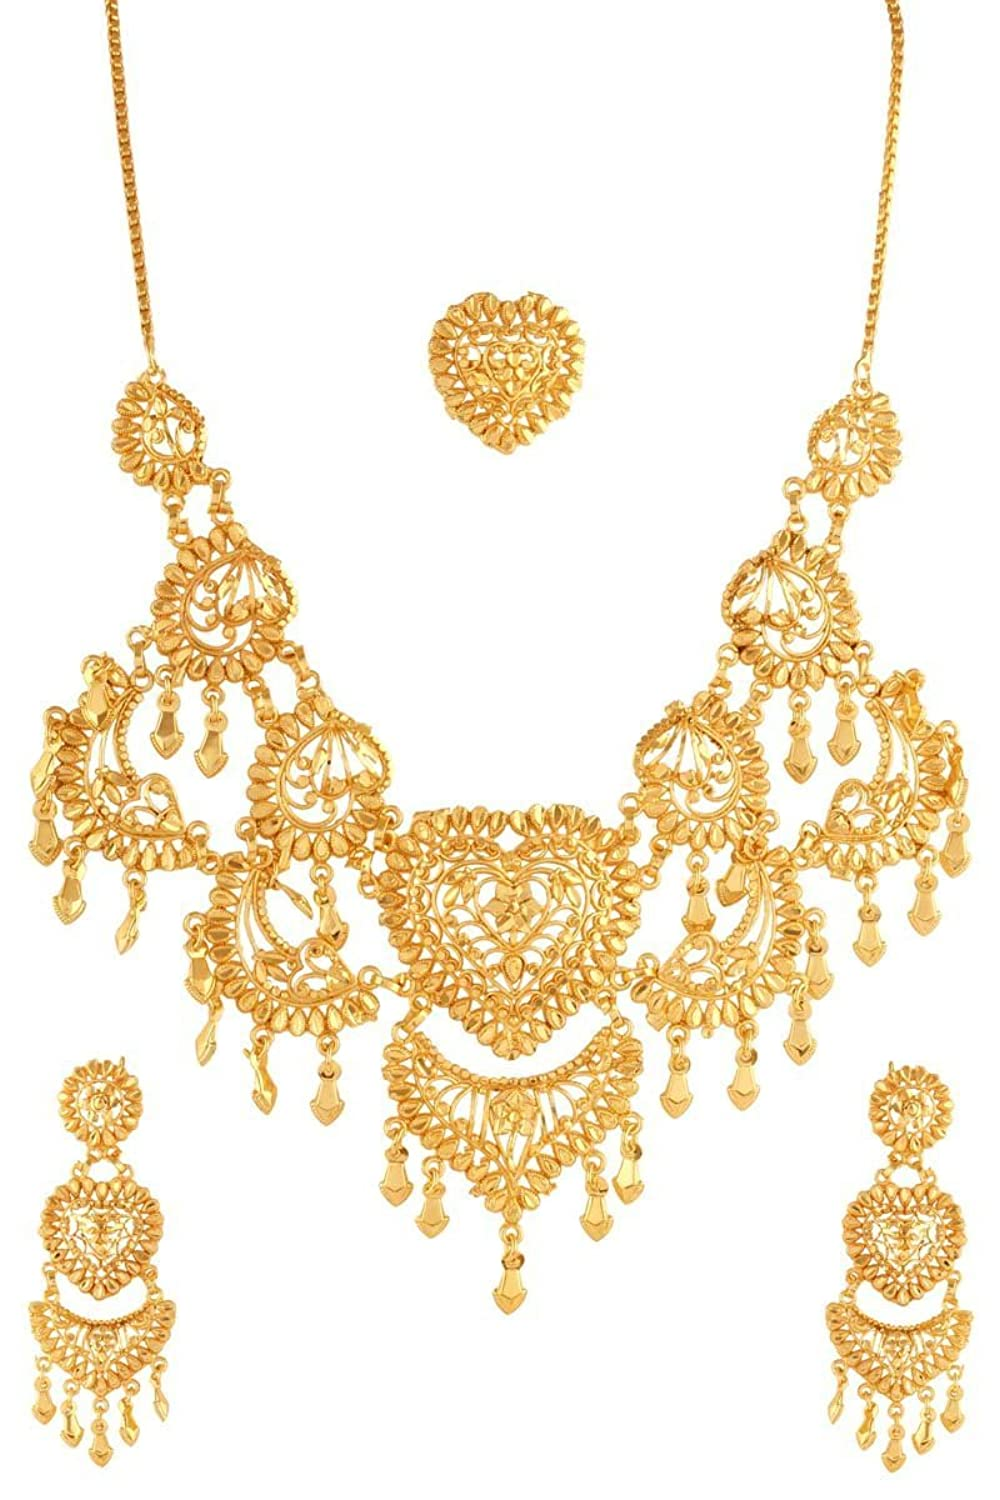 Feature Peacock Pendant One Gram Gold Plated Real Look 1 Set Perhiasan India Buy Variations Stunning Heart Shape Necklace For Women Matching Ring Vd17214 Online At Low Prices In Amazon Jewellery Store